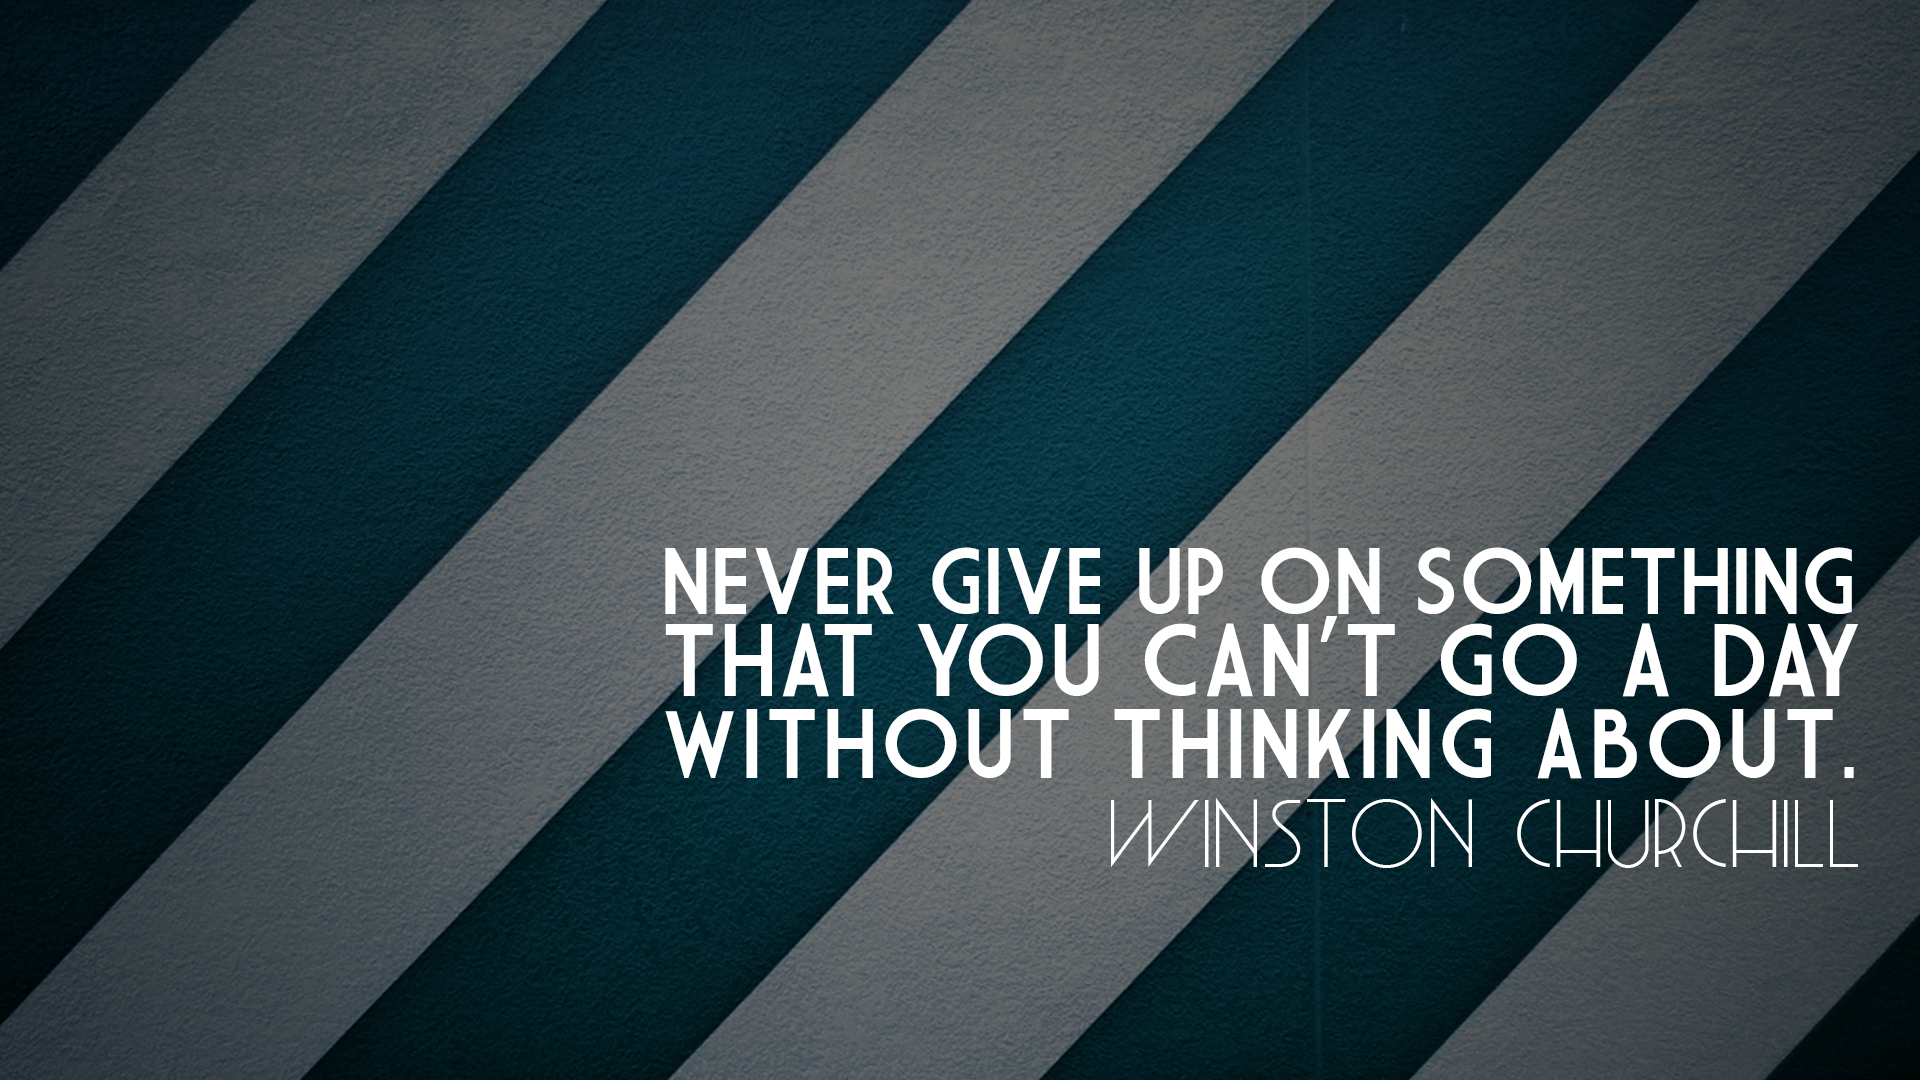 Never give up on something that you can't go a day without thinking about. Winston Churchill